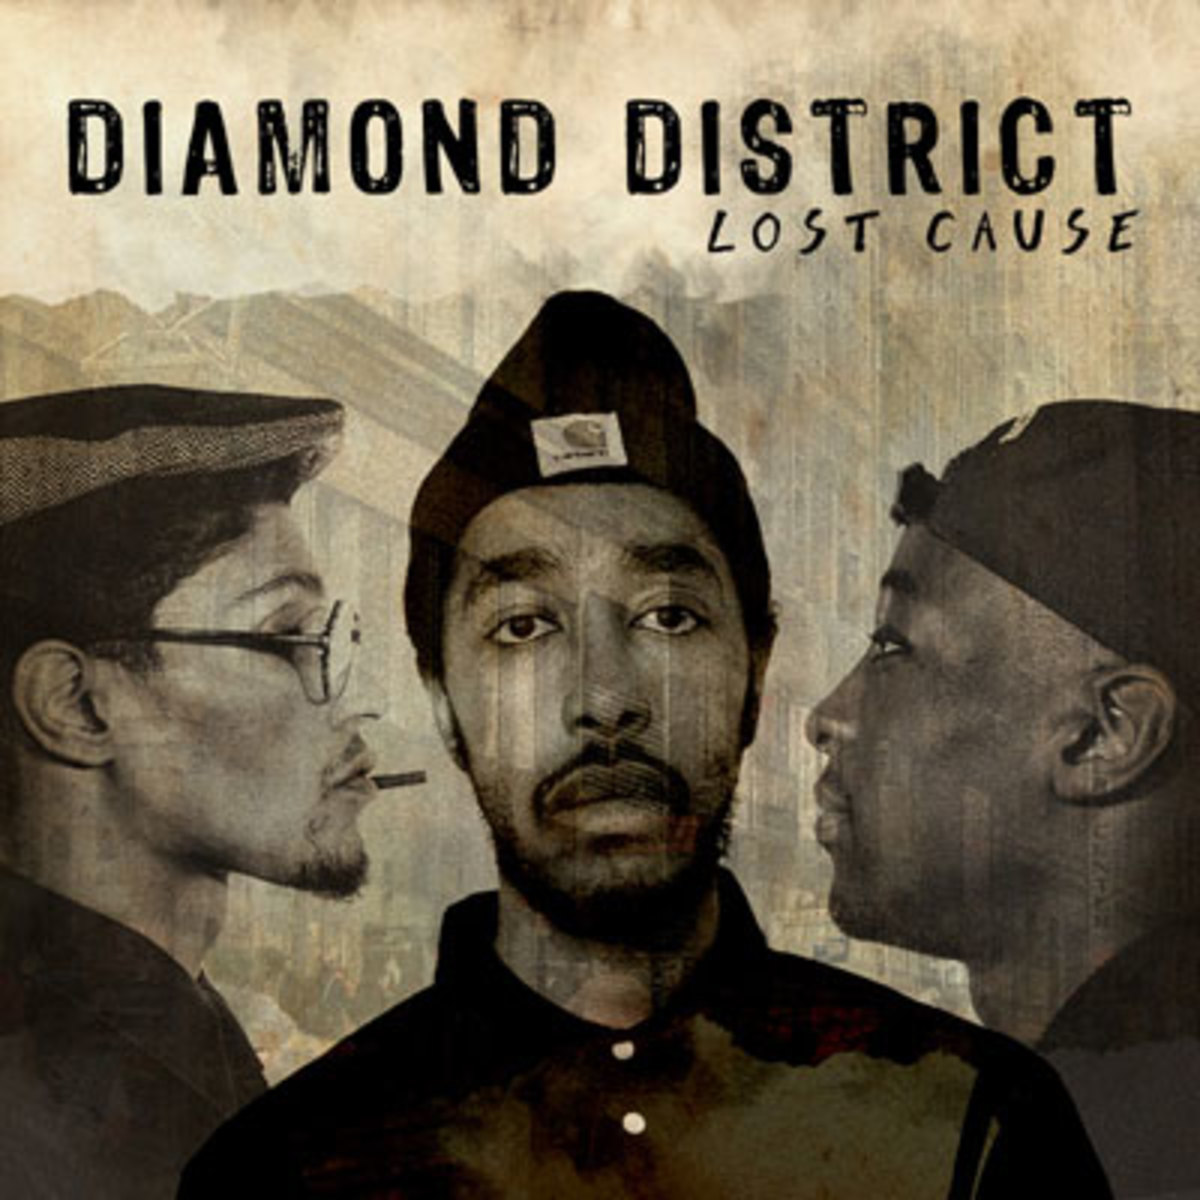 diamonddistrict-lostcause.jpg